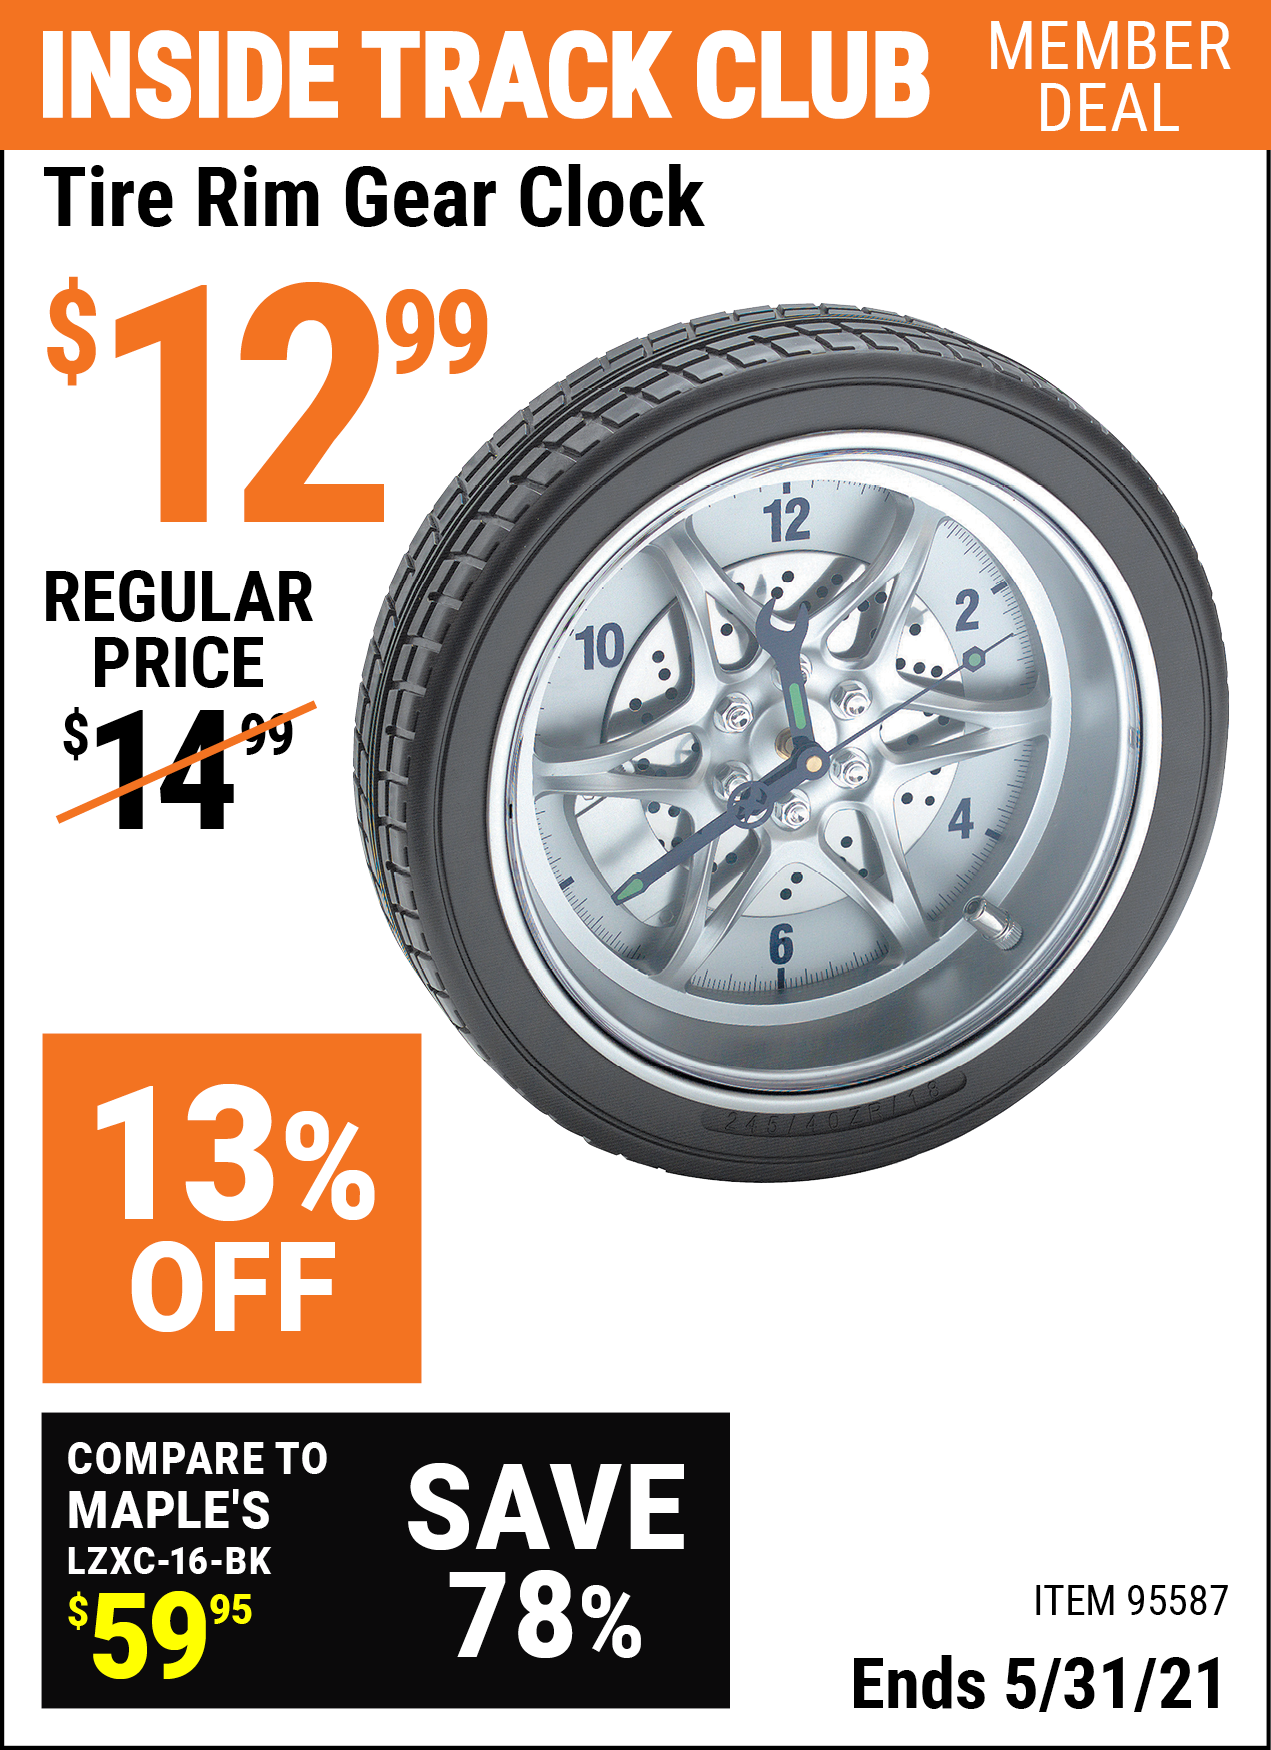 Inside Track Club members can buy the Tire Rim Gear Clock (Item 95587) for $12.99, valid through 5/31/2021.